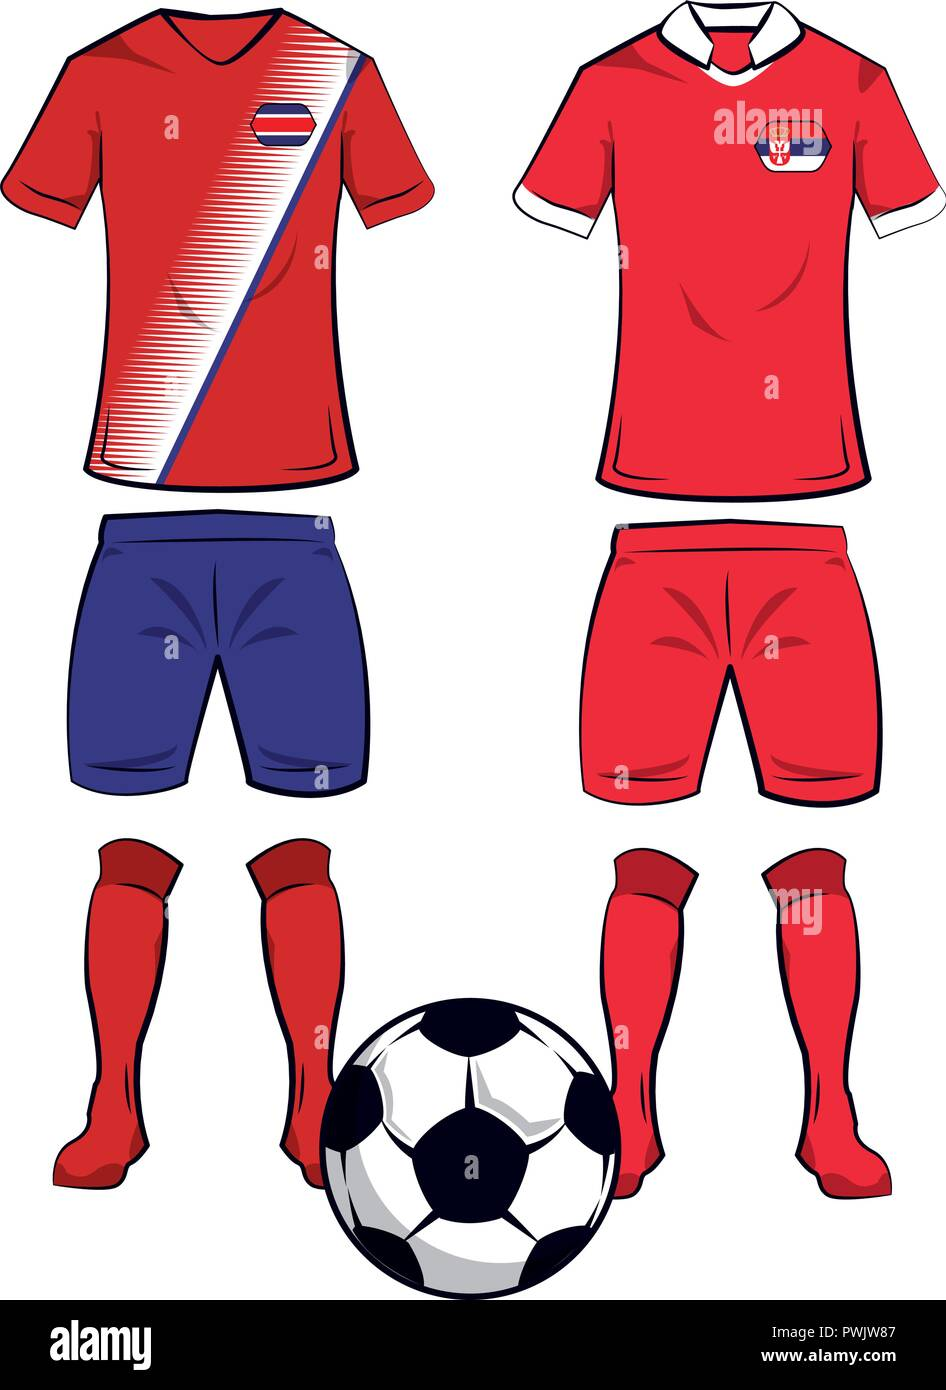 a125c9683d8 Soccer costa rica and serbia teams uniforms and ball vector illustration  graphic design